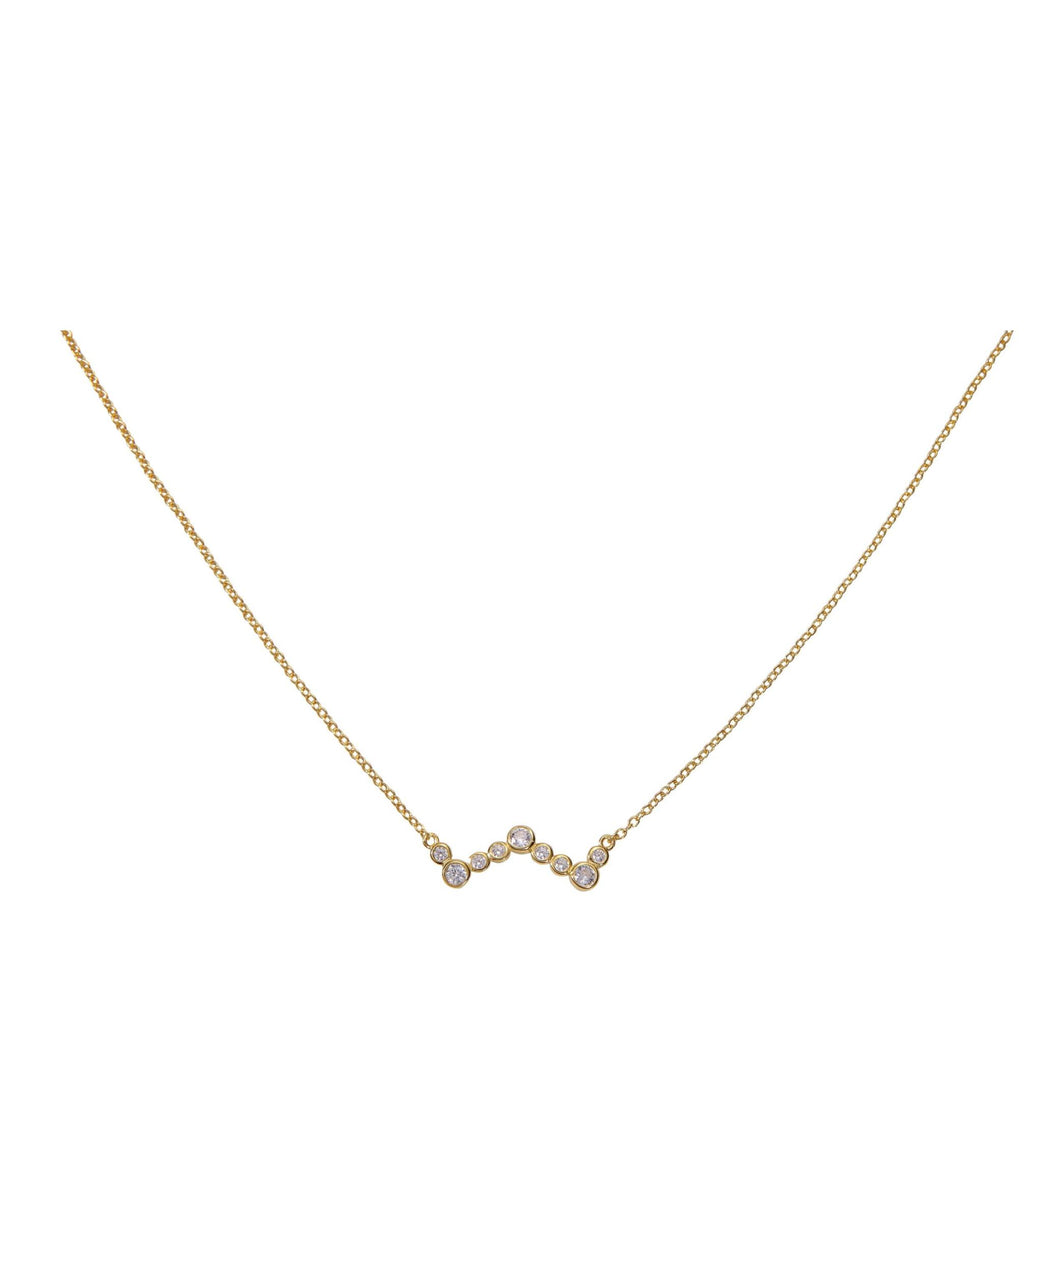 Heartbeat Necklace - Yellow Gold